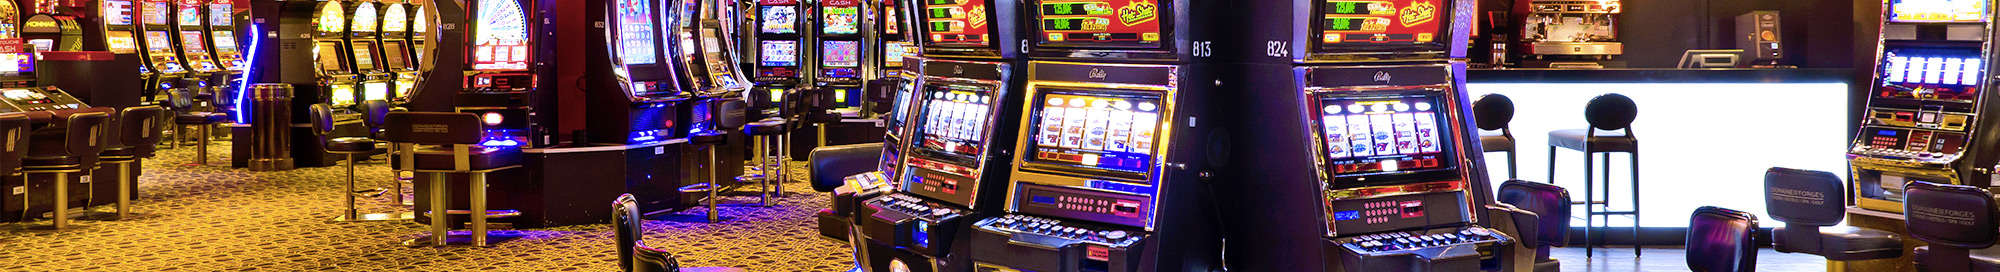 Week-end en Hotels Casinos en Ile-de-France